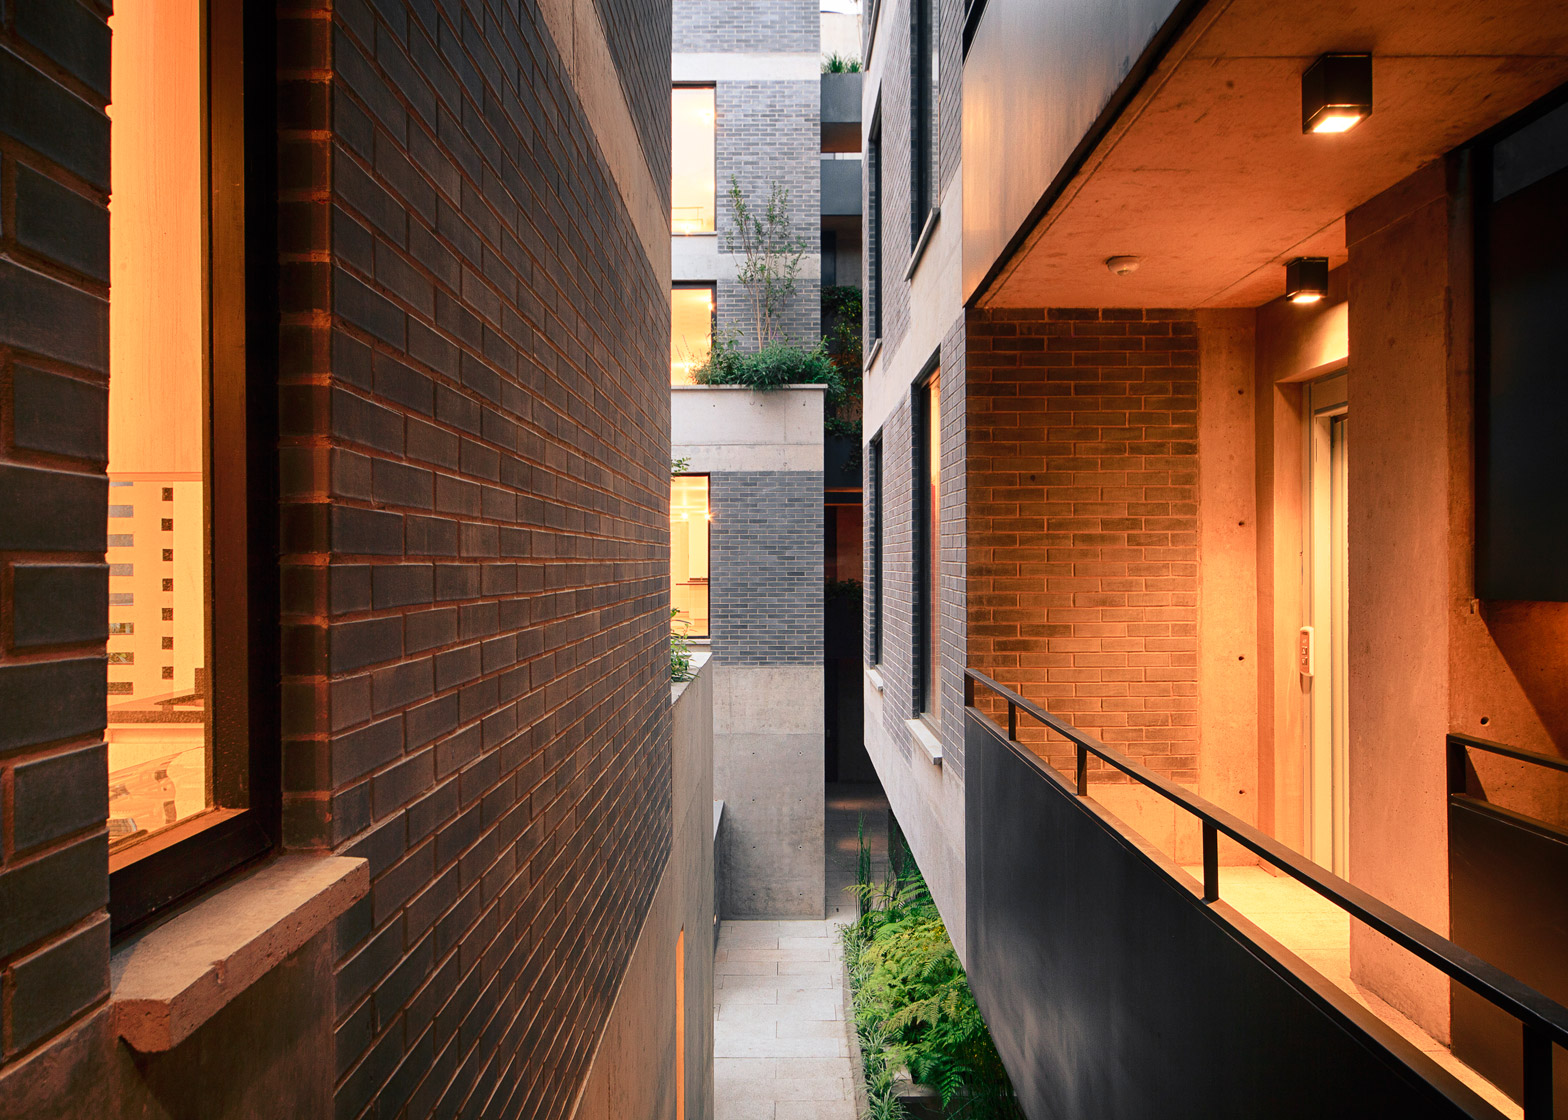 Liverpool 61 housing by MMX